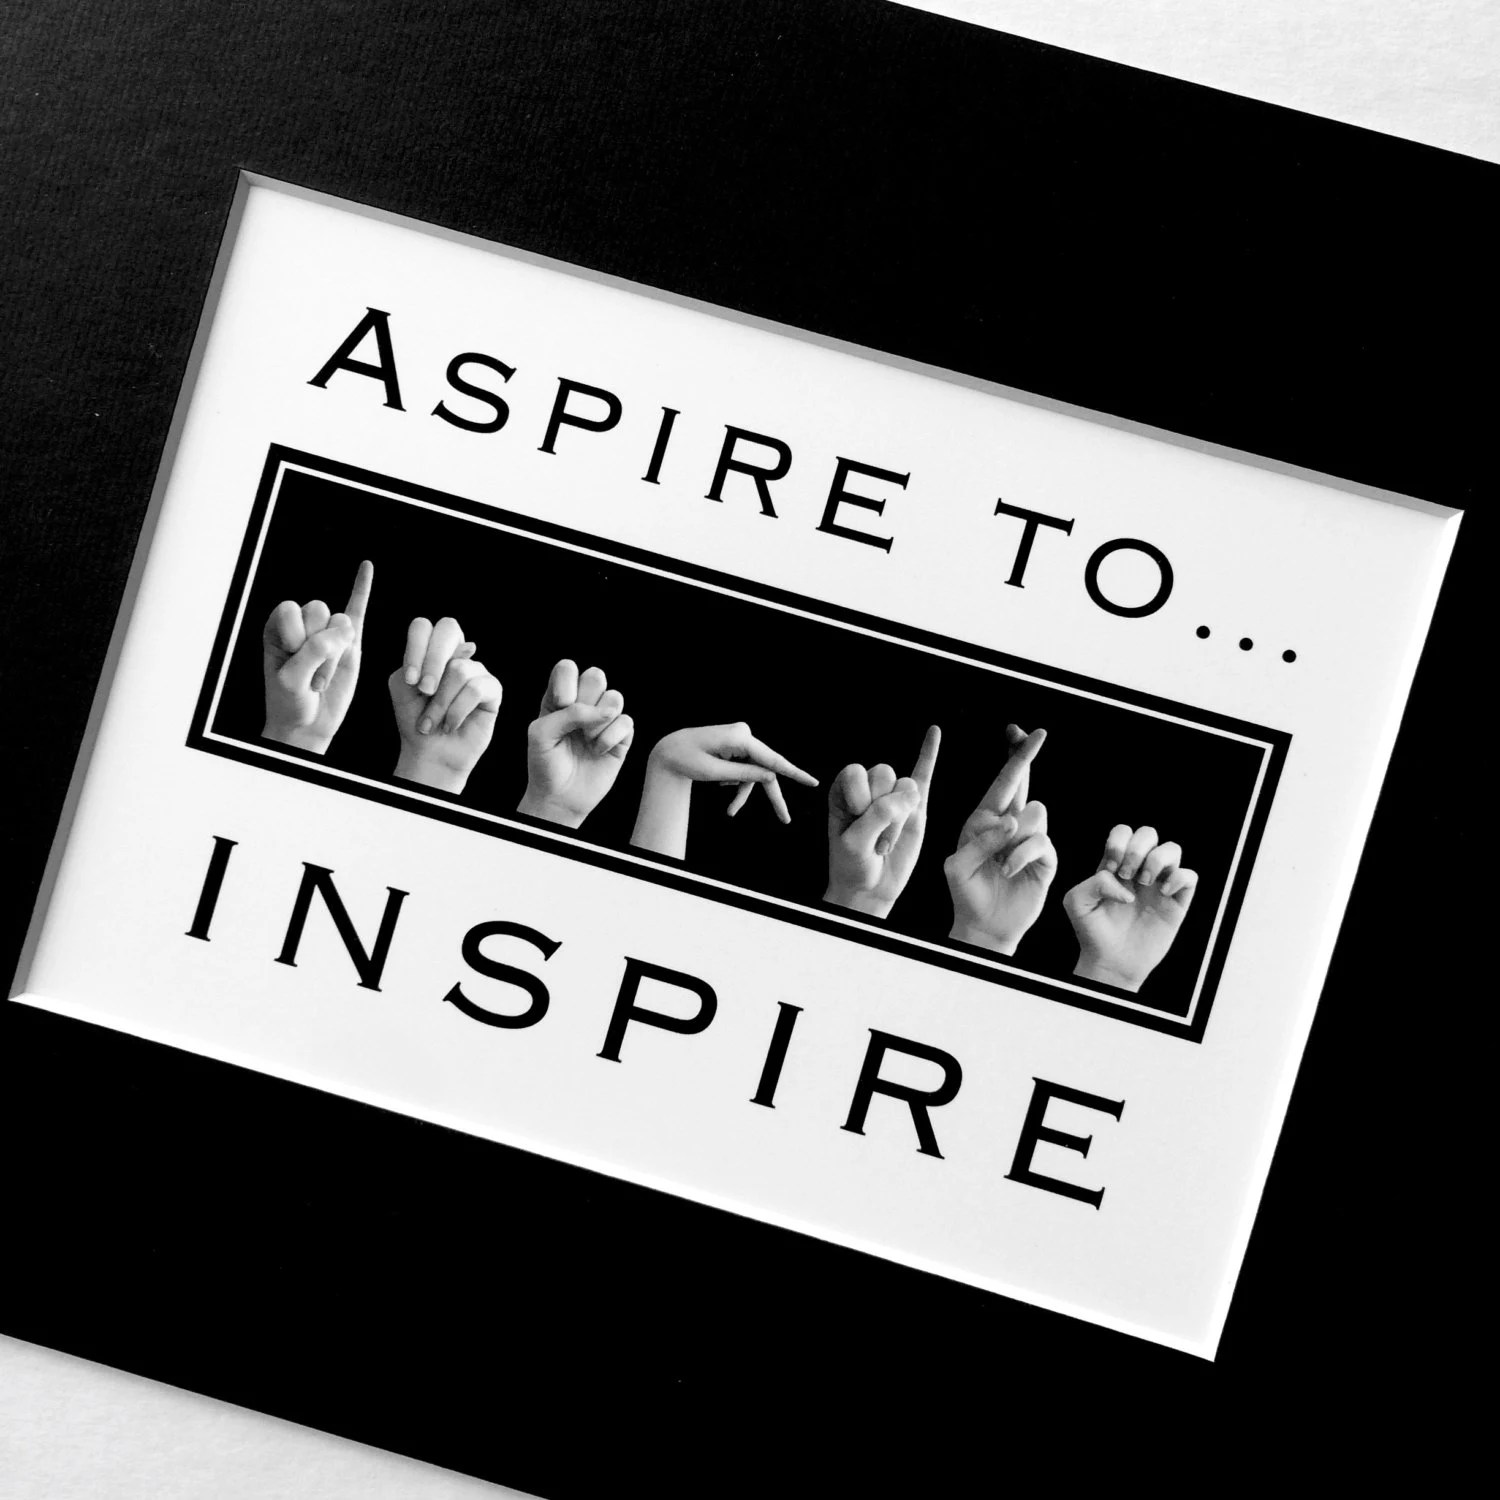 Asl Aspire To Inspire American Sign Language Letters